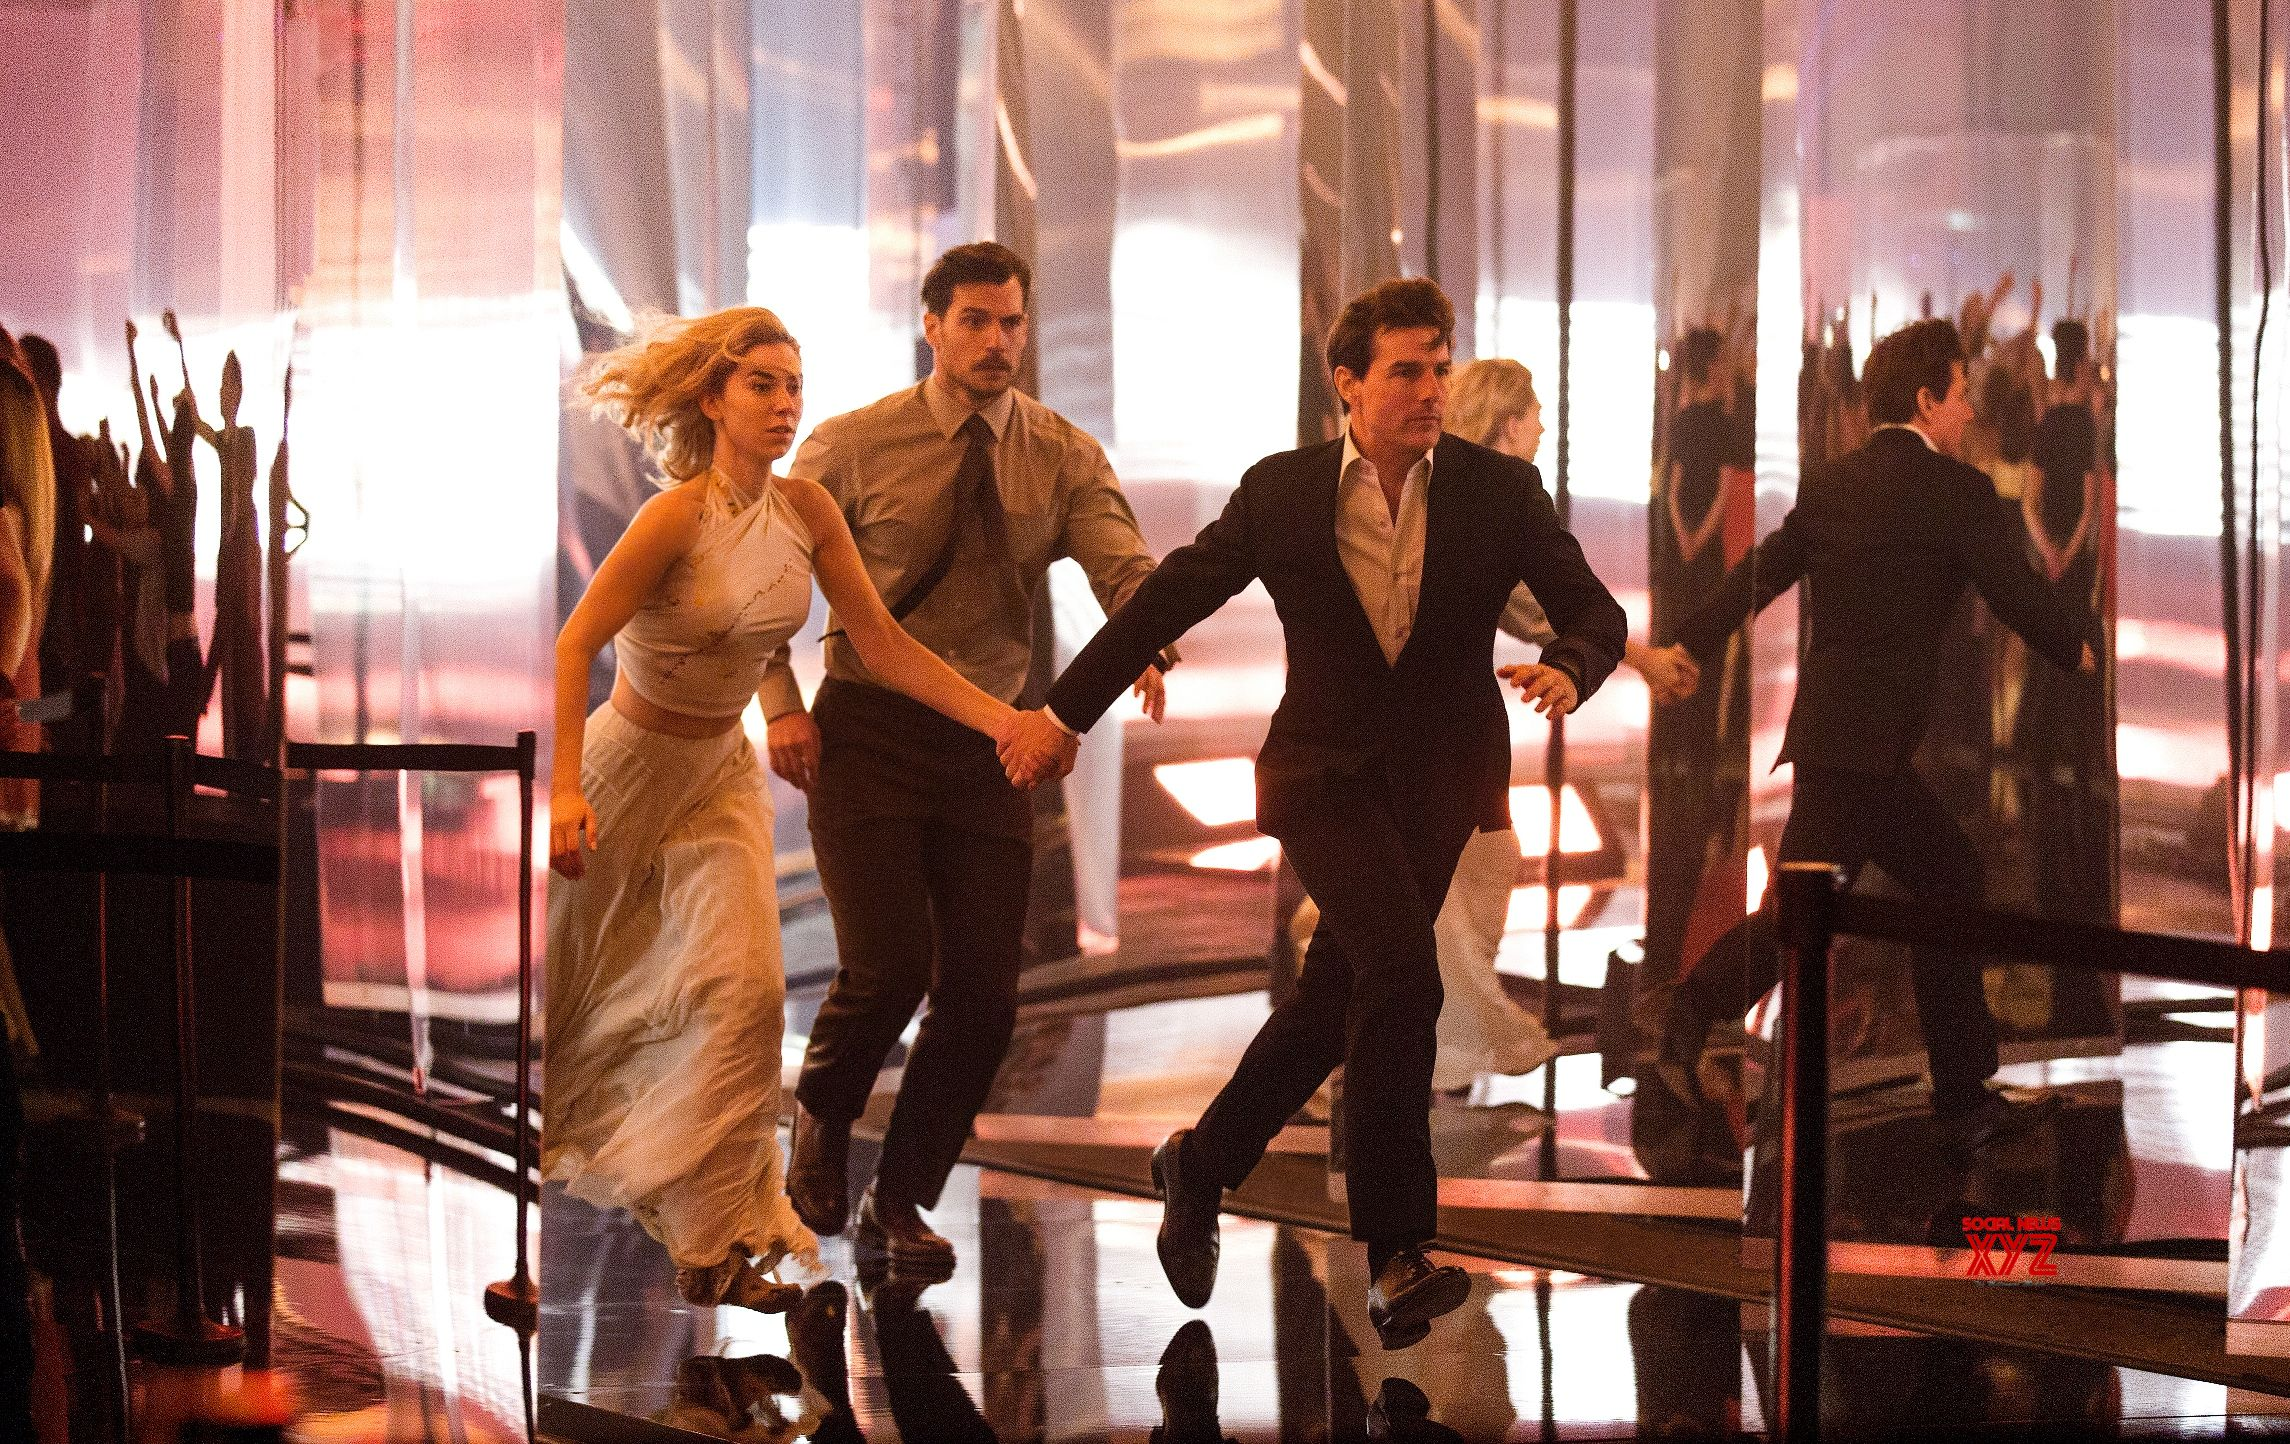 Mission Impossible Fallout Review Outshines The Previous Editions Rating